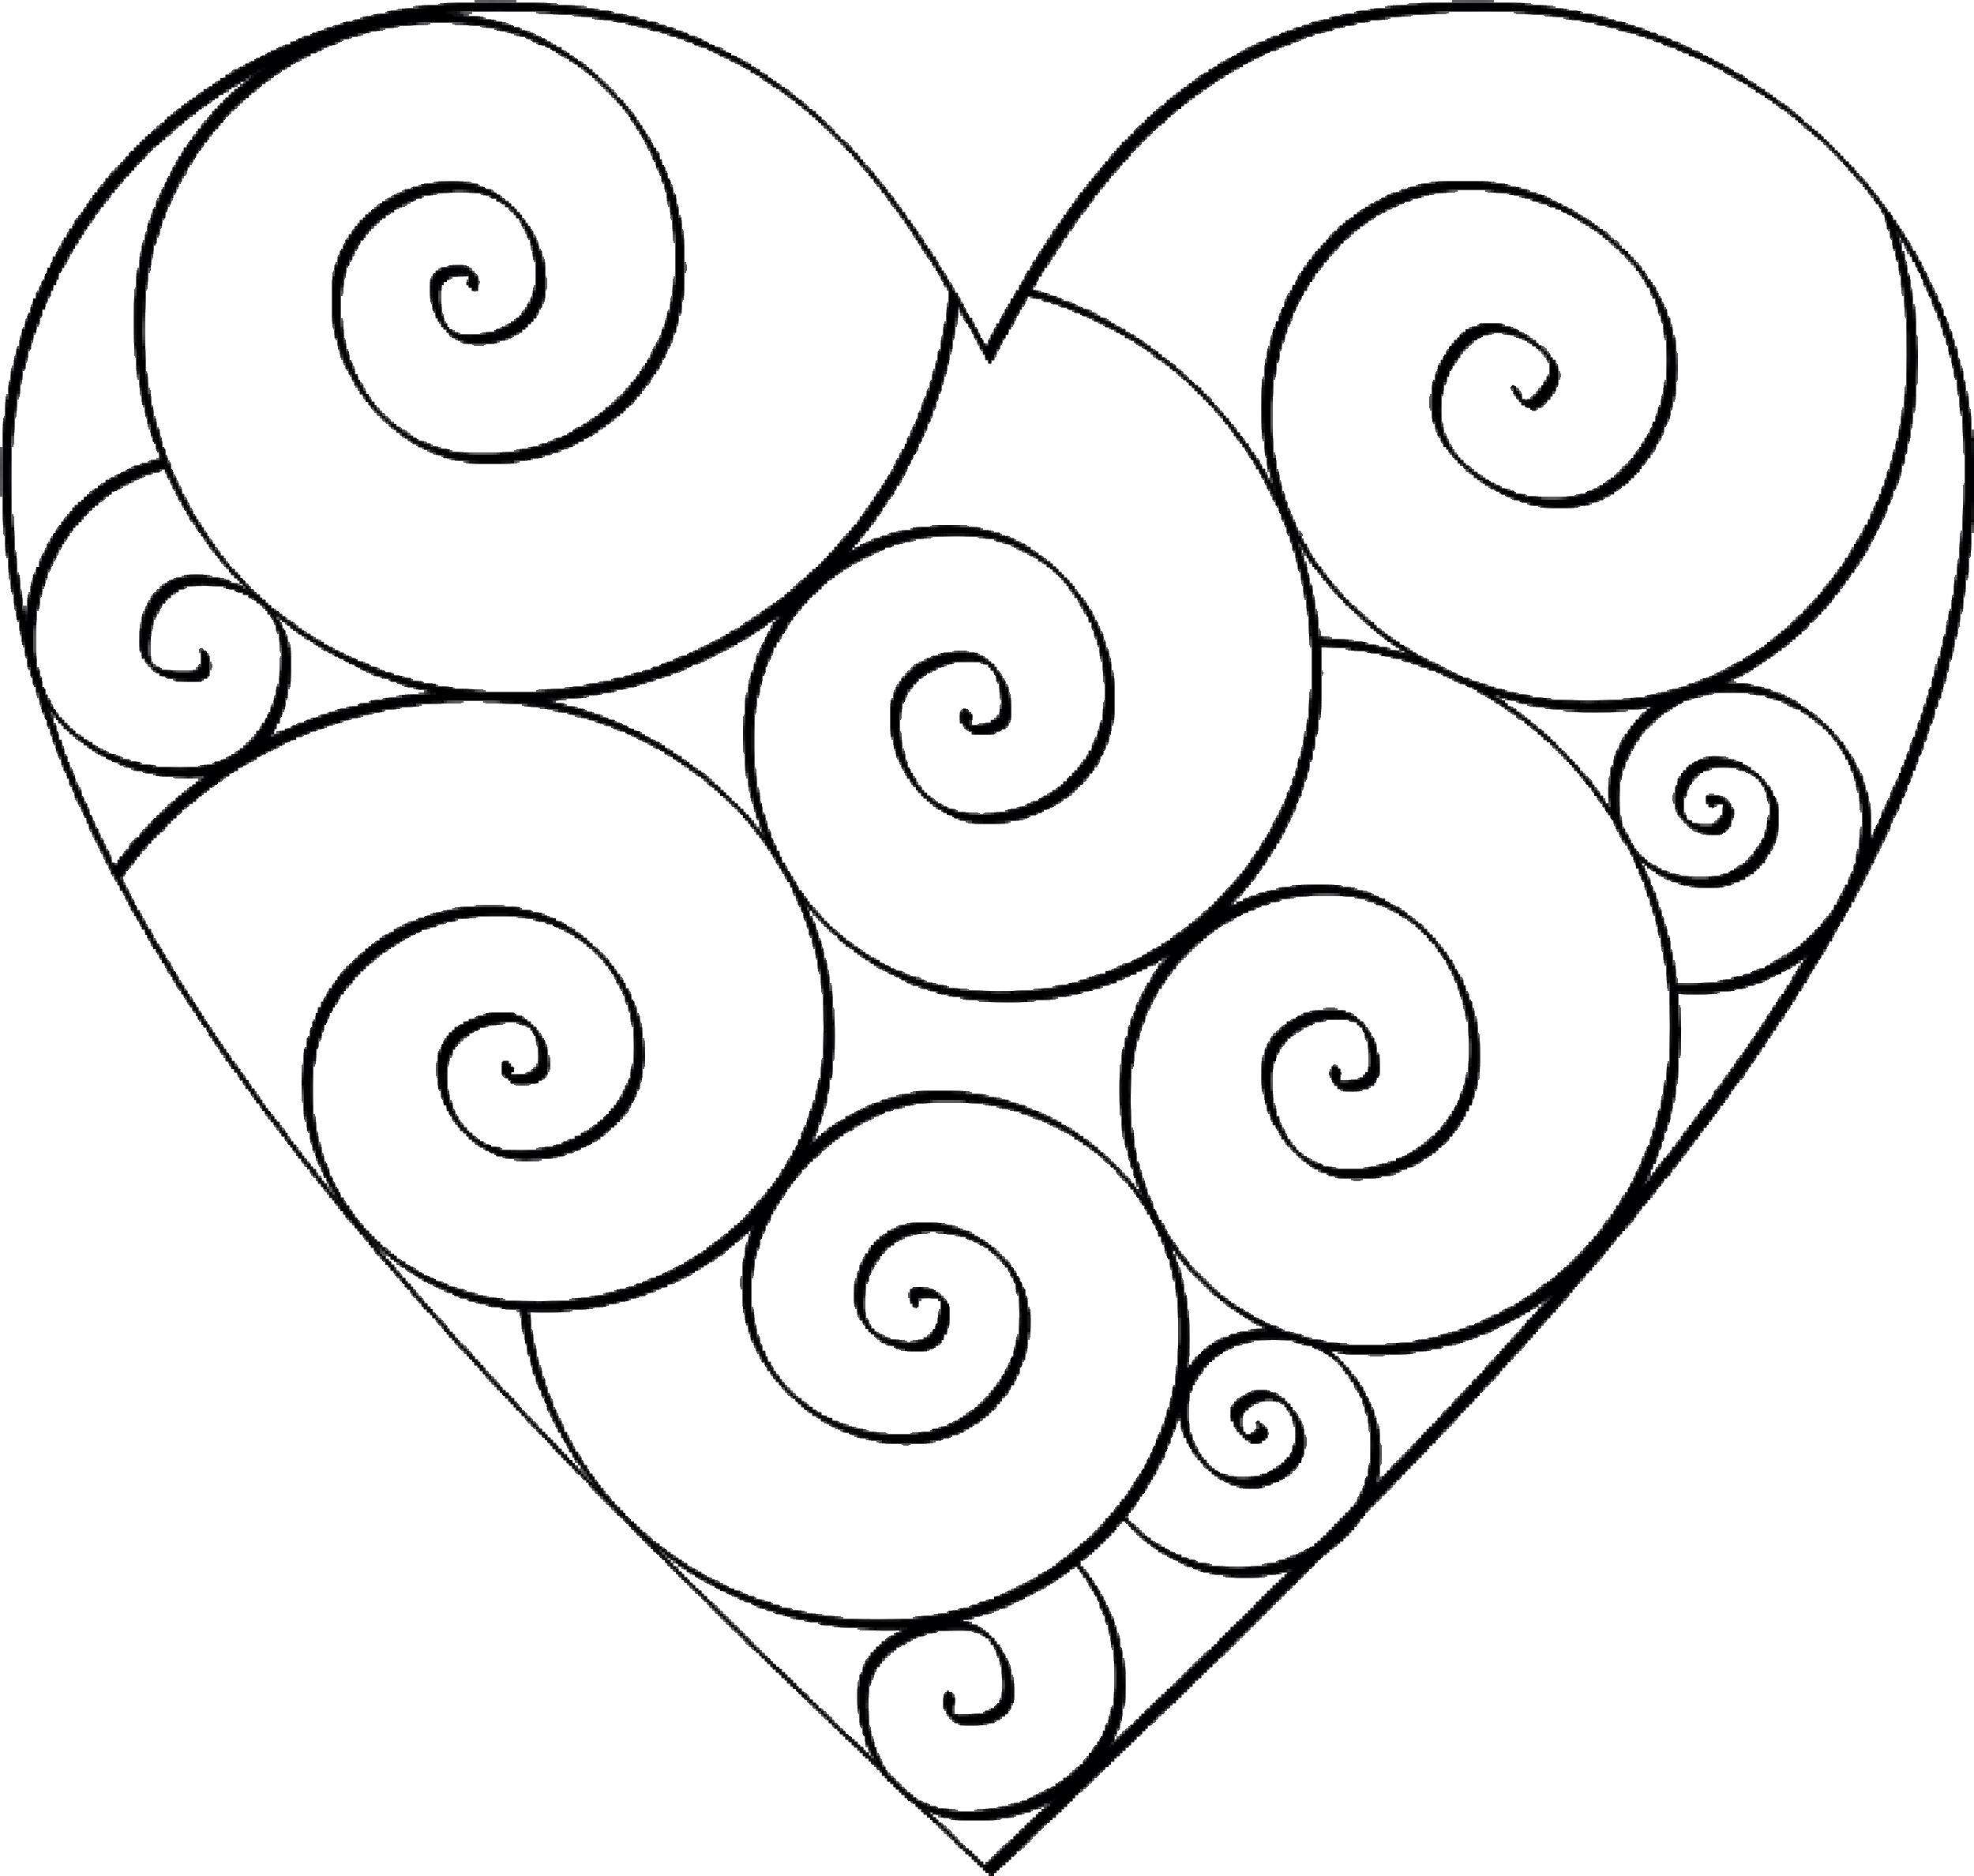 free heart coloring pages free printable heart coloring pages for kids cool2bkids heart coloring free pages